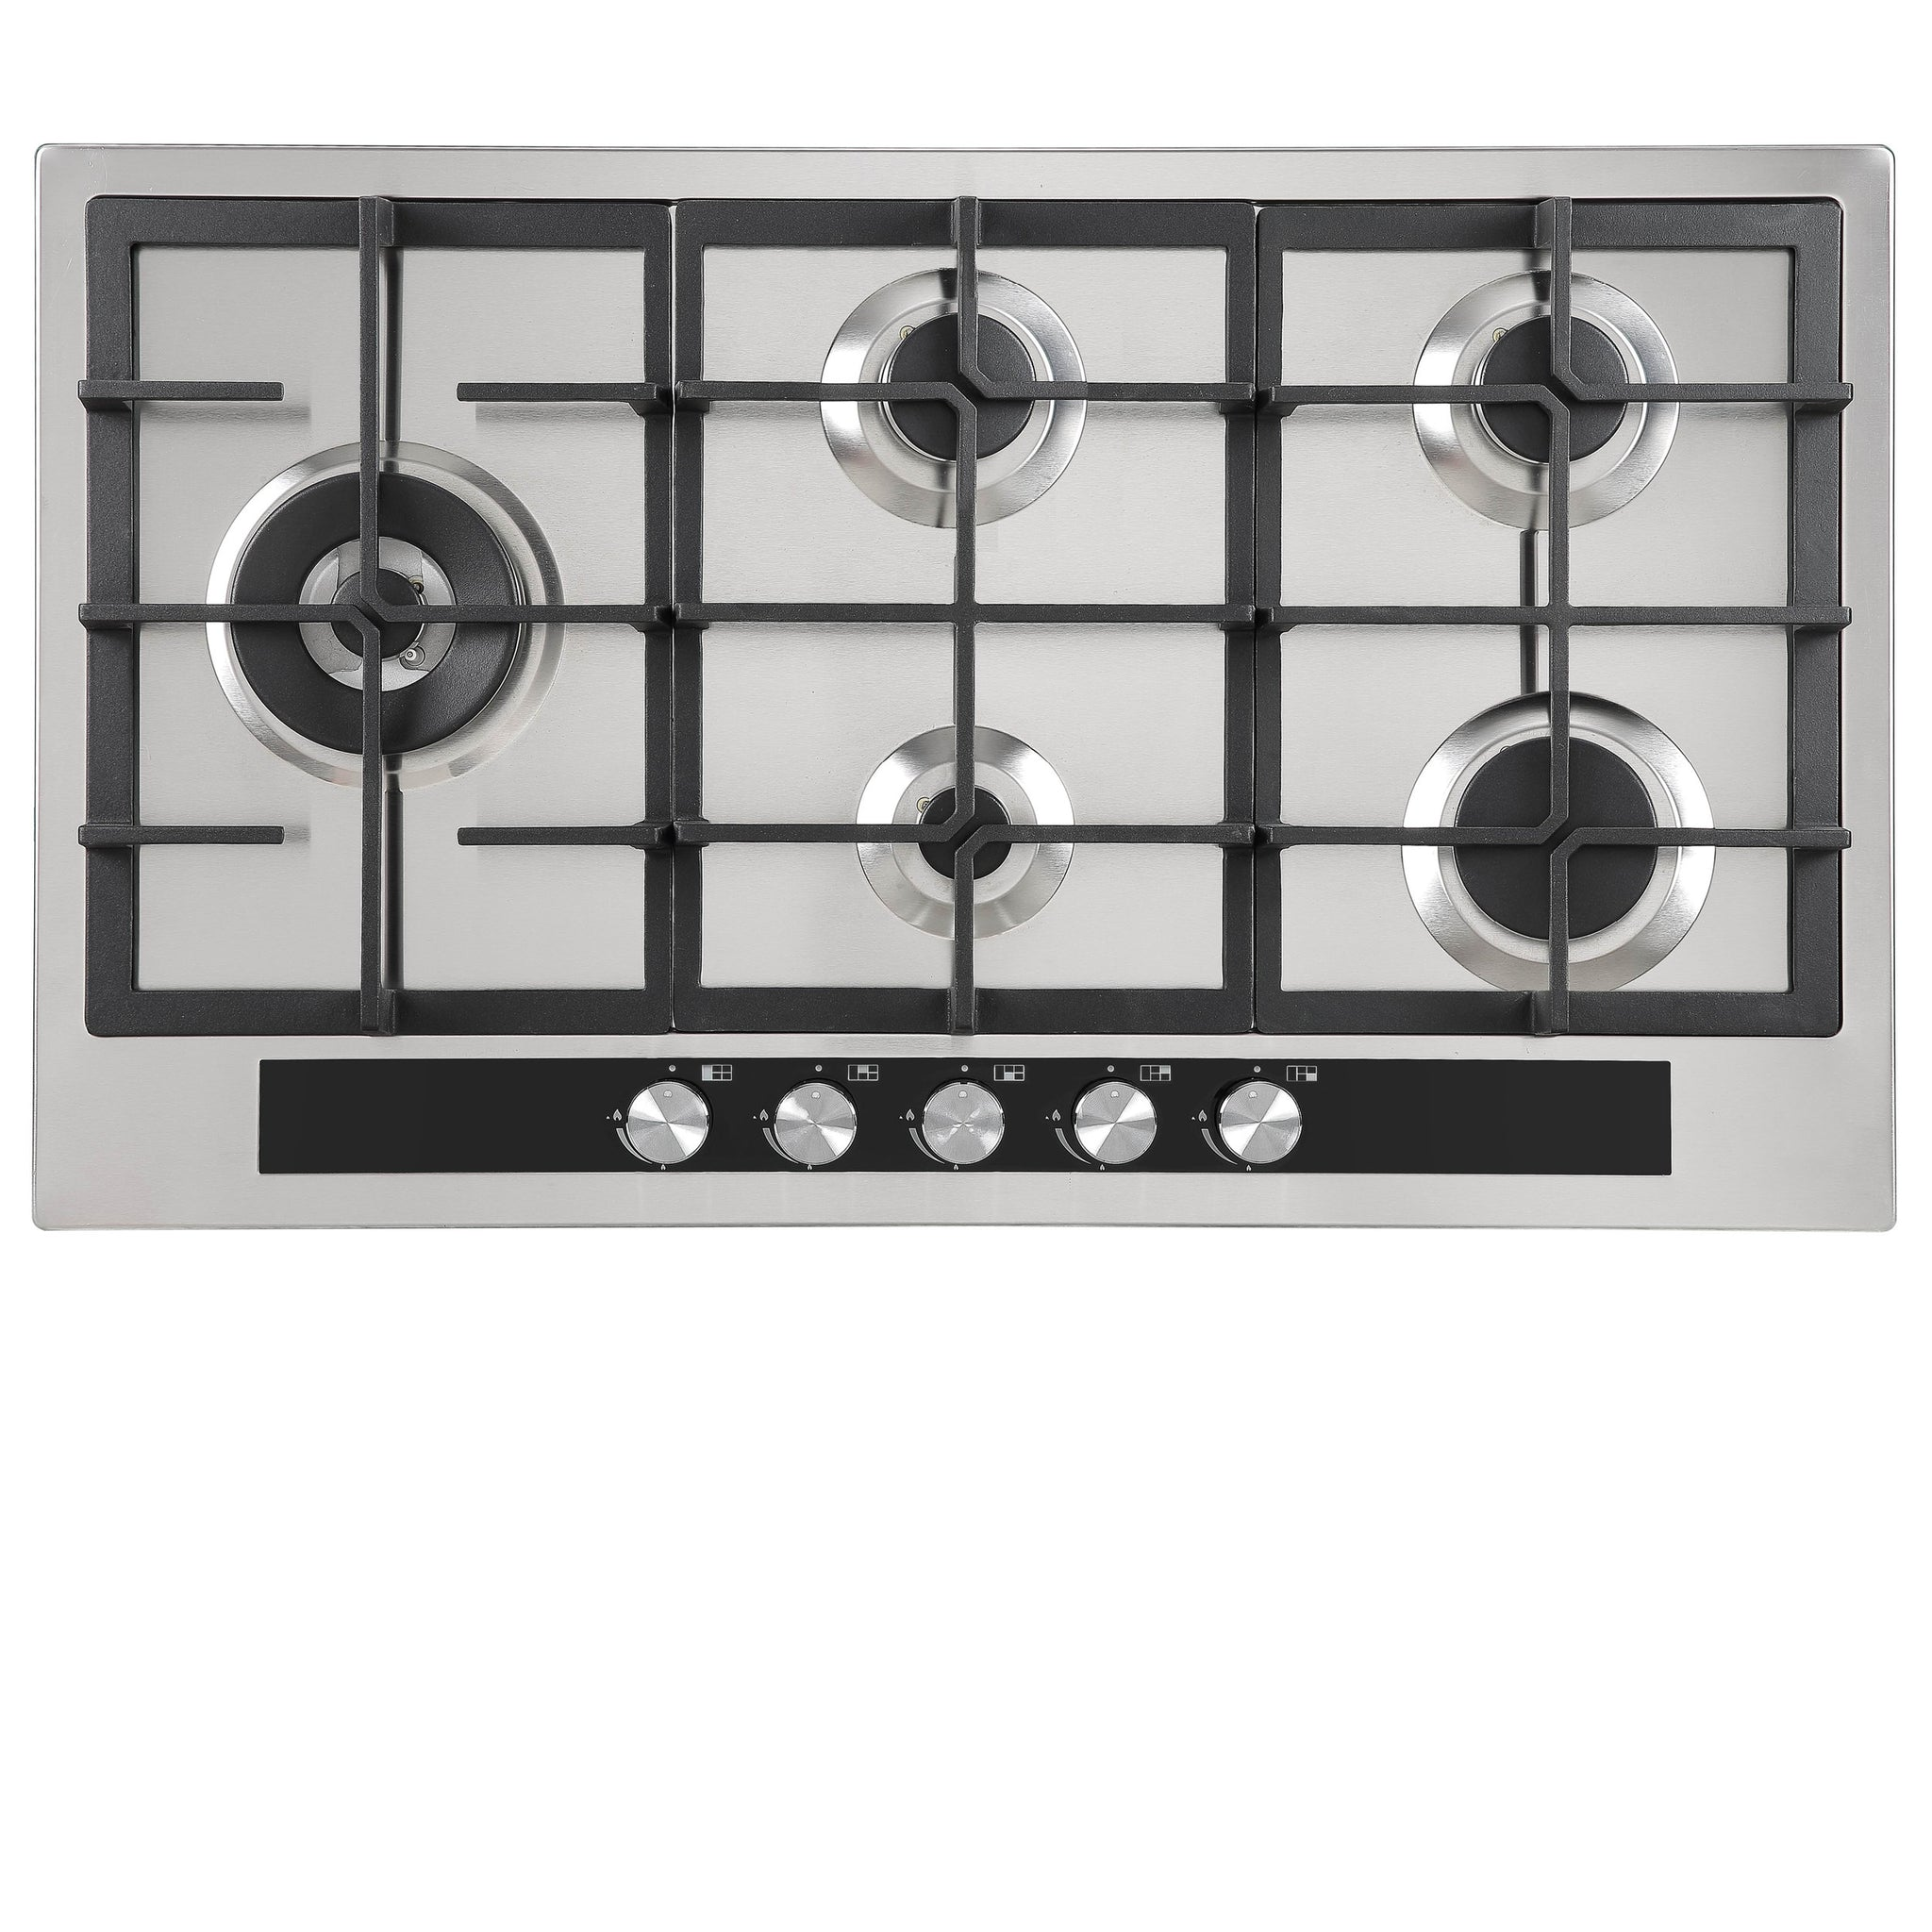 Inalto ICG905W 90cm Gas Cooktop with Wok Burner